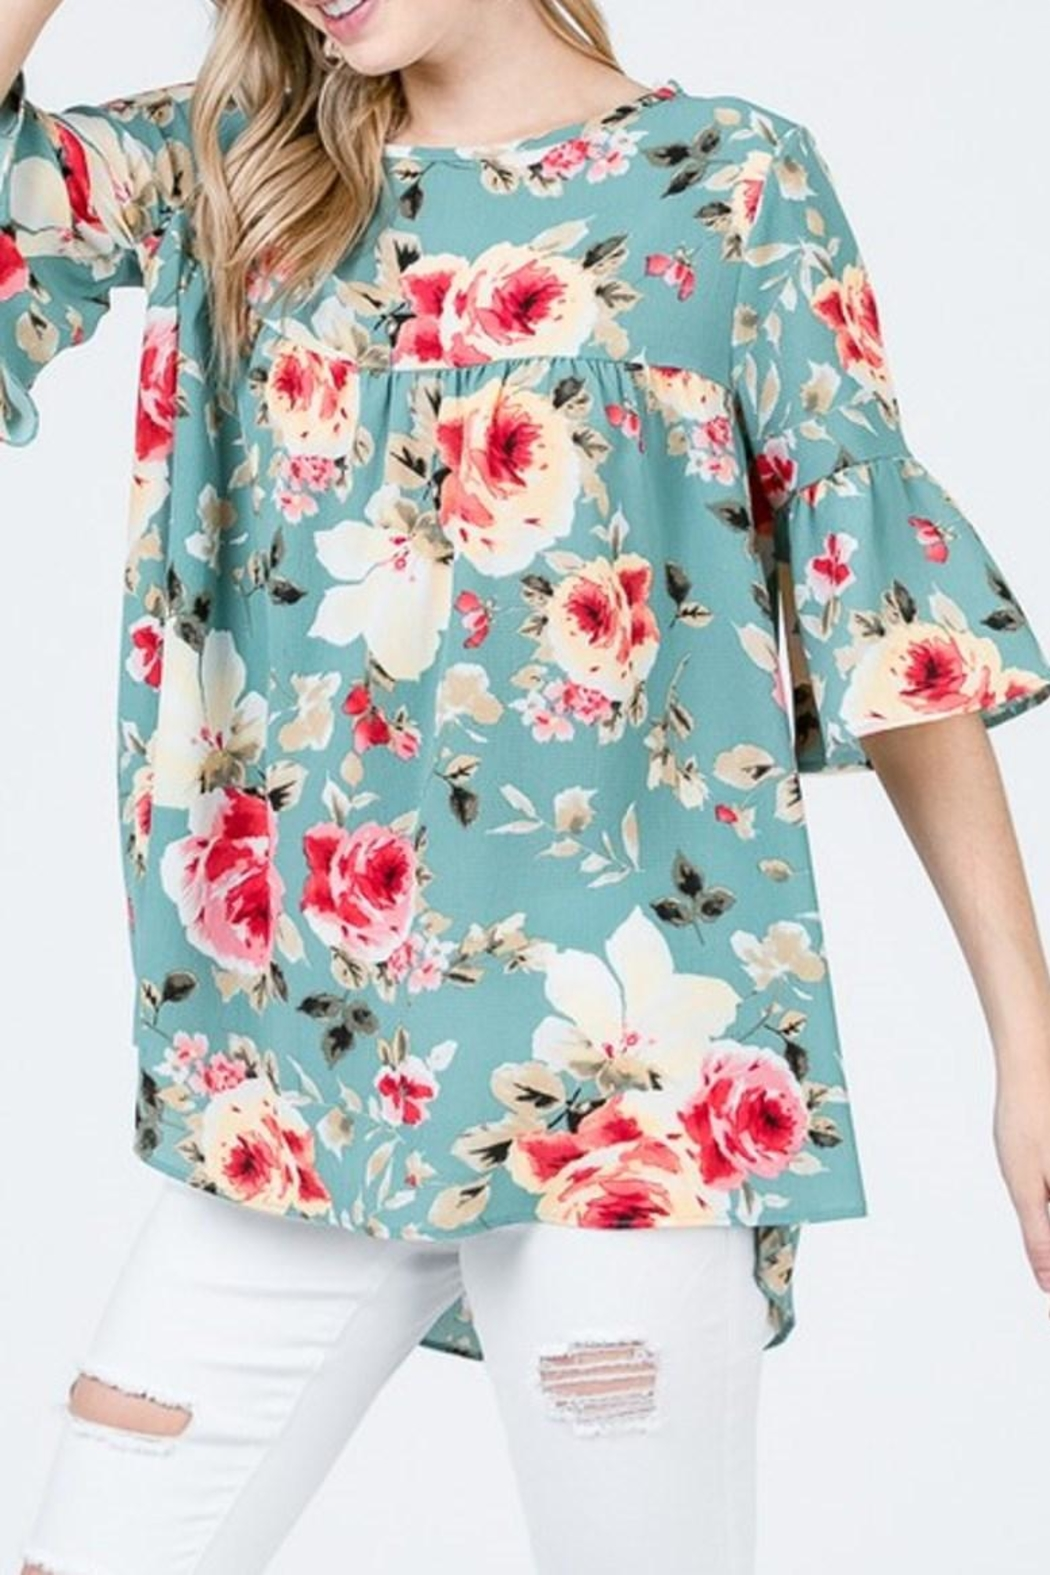 489c9b18ae159 Ces Femme Teal Floral Top from Texas by Red Poppy — Shoptiques